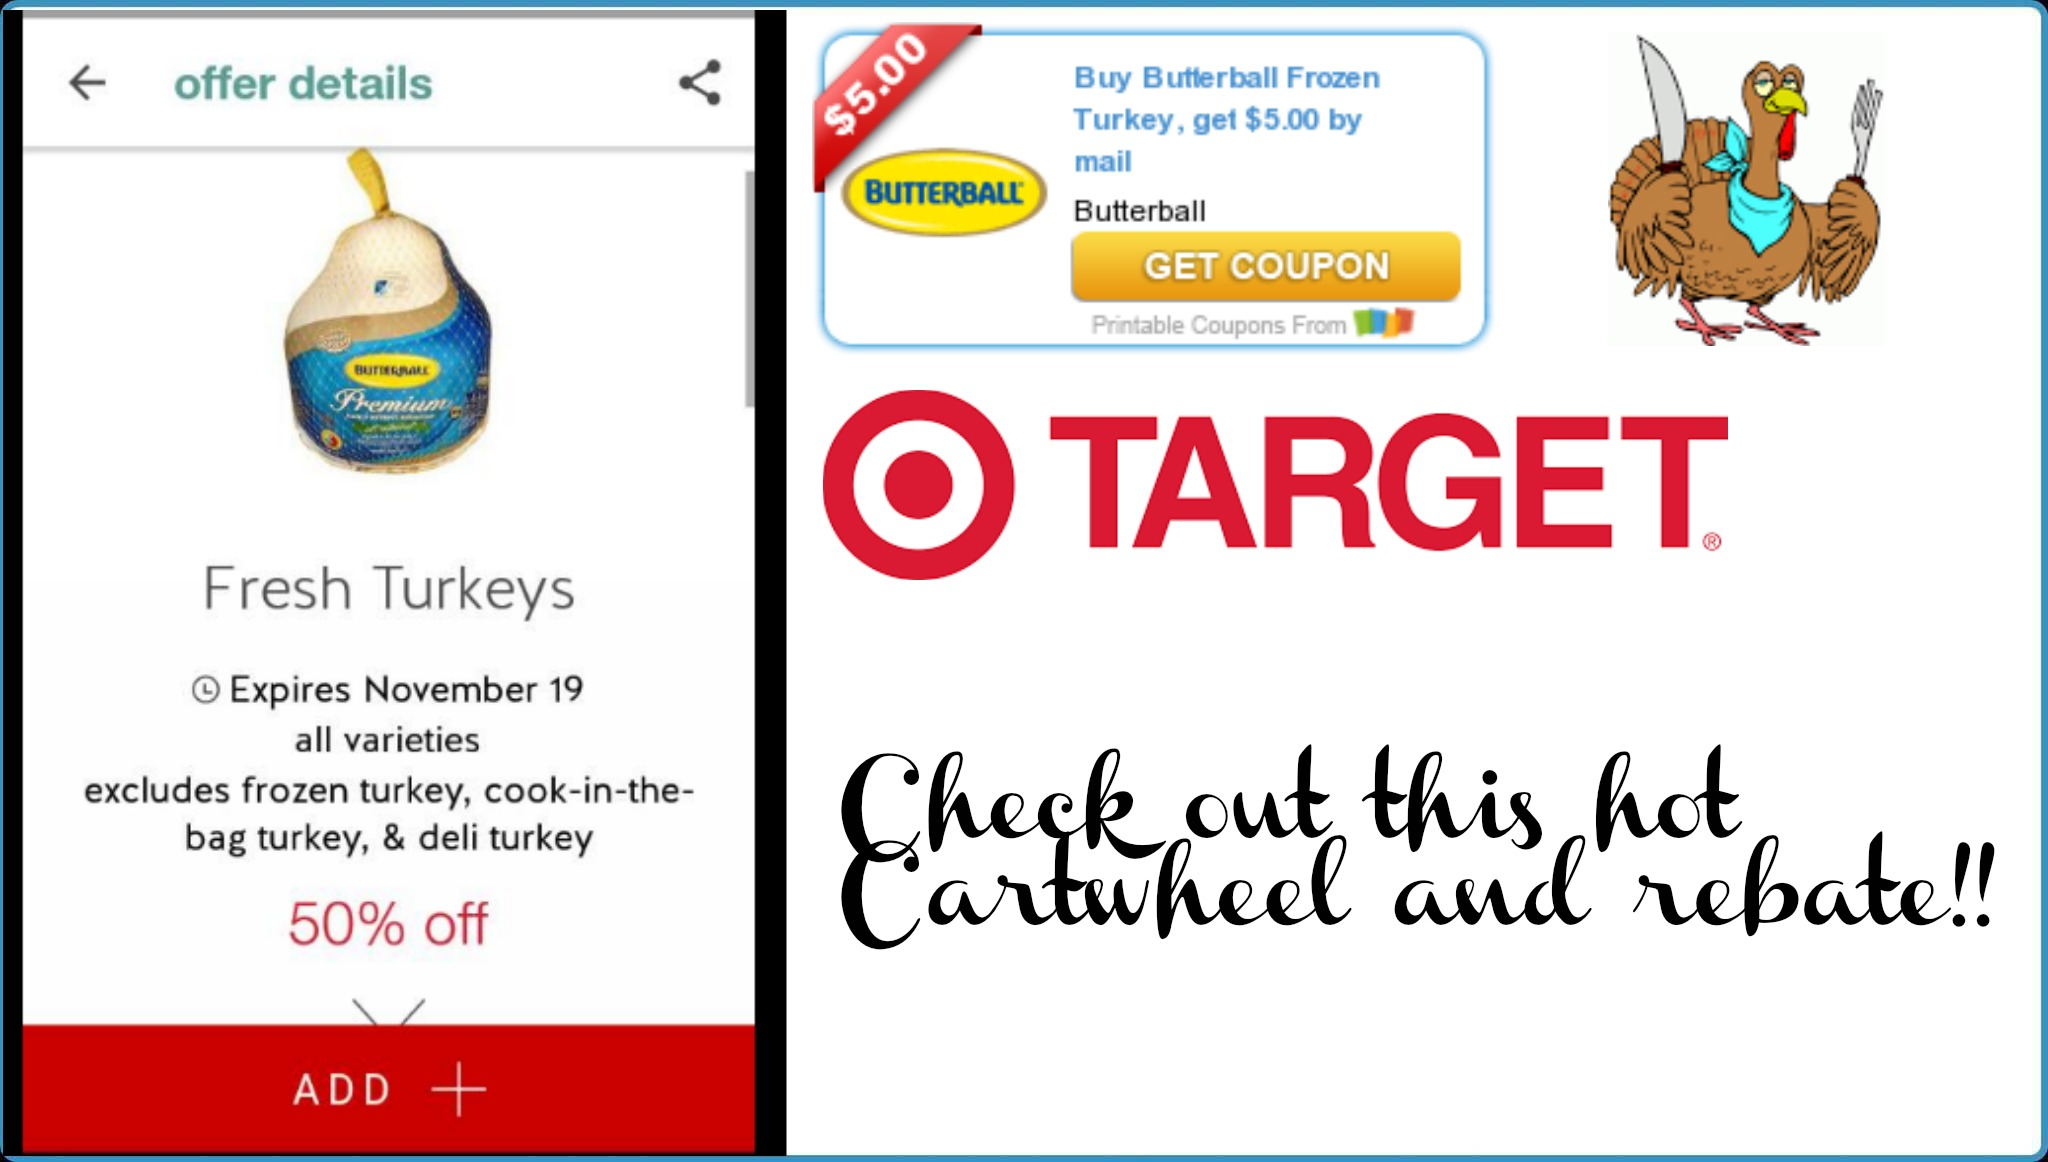 photo about Butterball Coupons Turkey Printable identify 50% off Cartwheel upon Butterball turkey and a coupon rebate